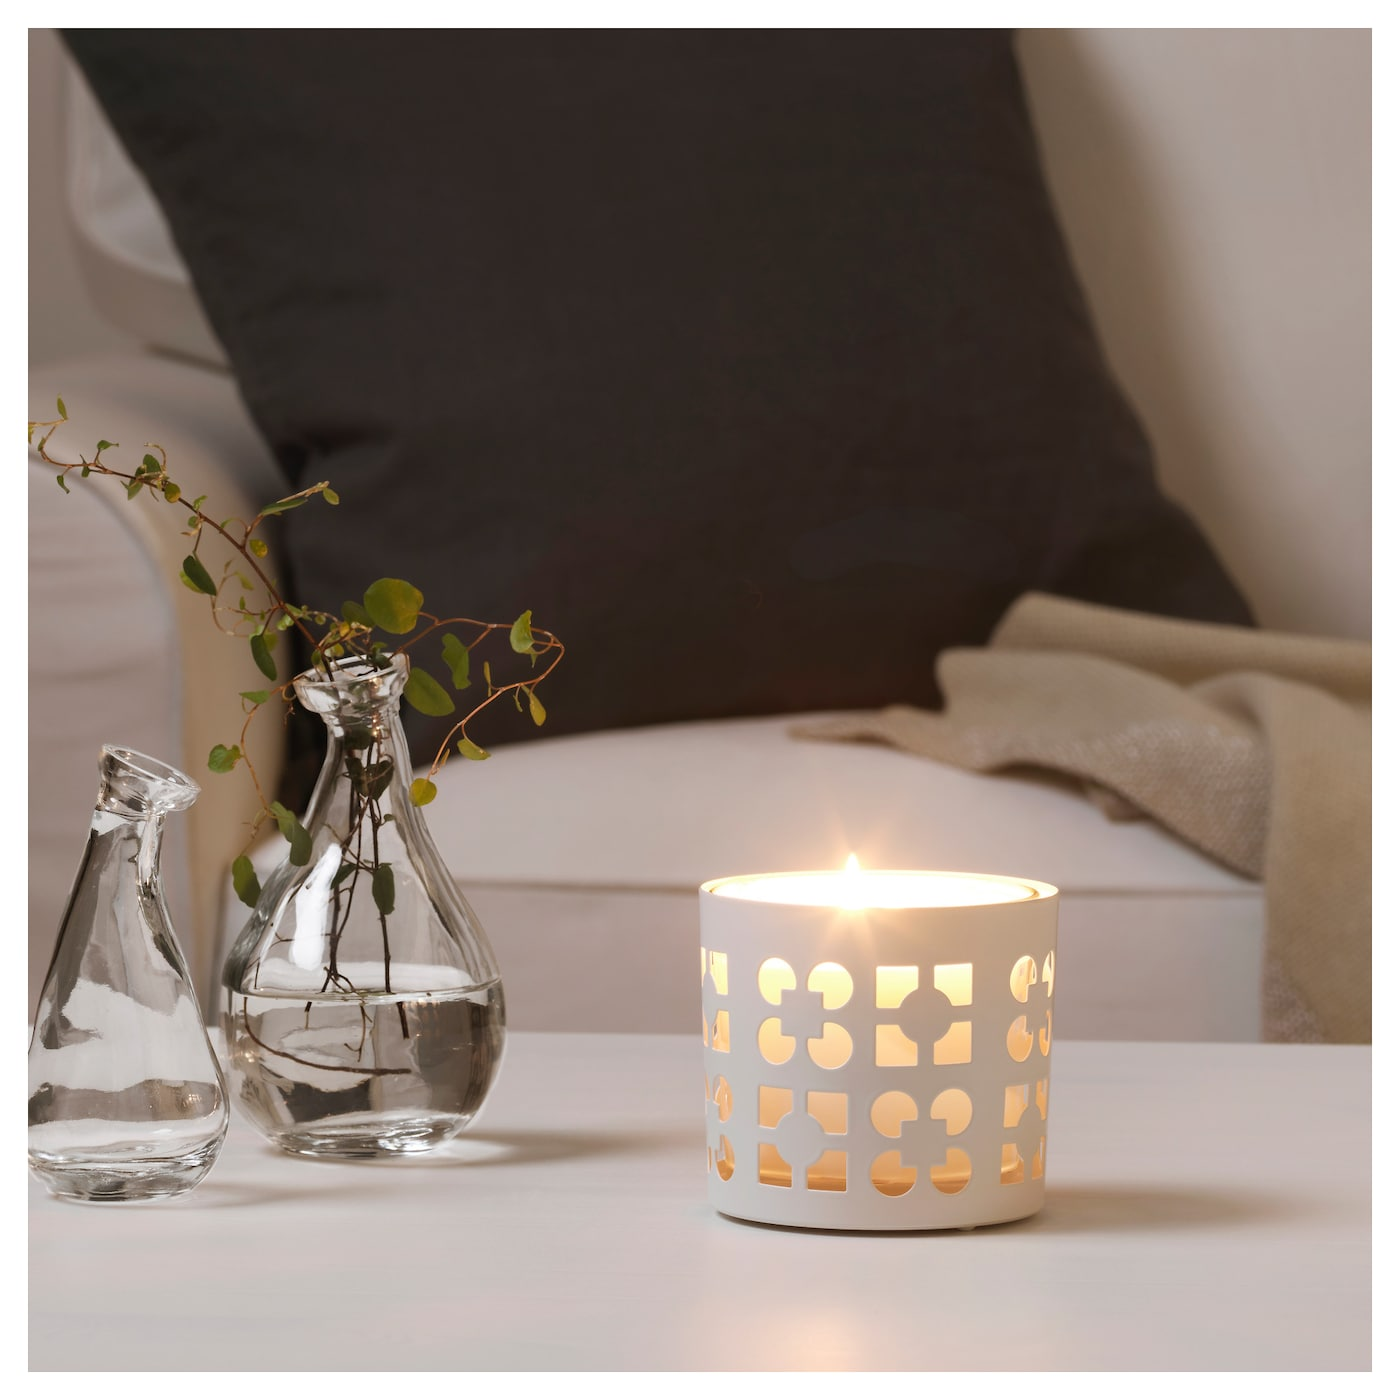 IKEA VACKERT decoration for candle in glass The decoration can also be used with large tealights.